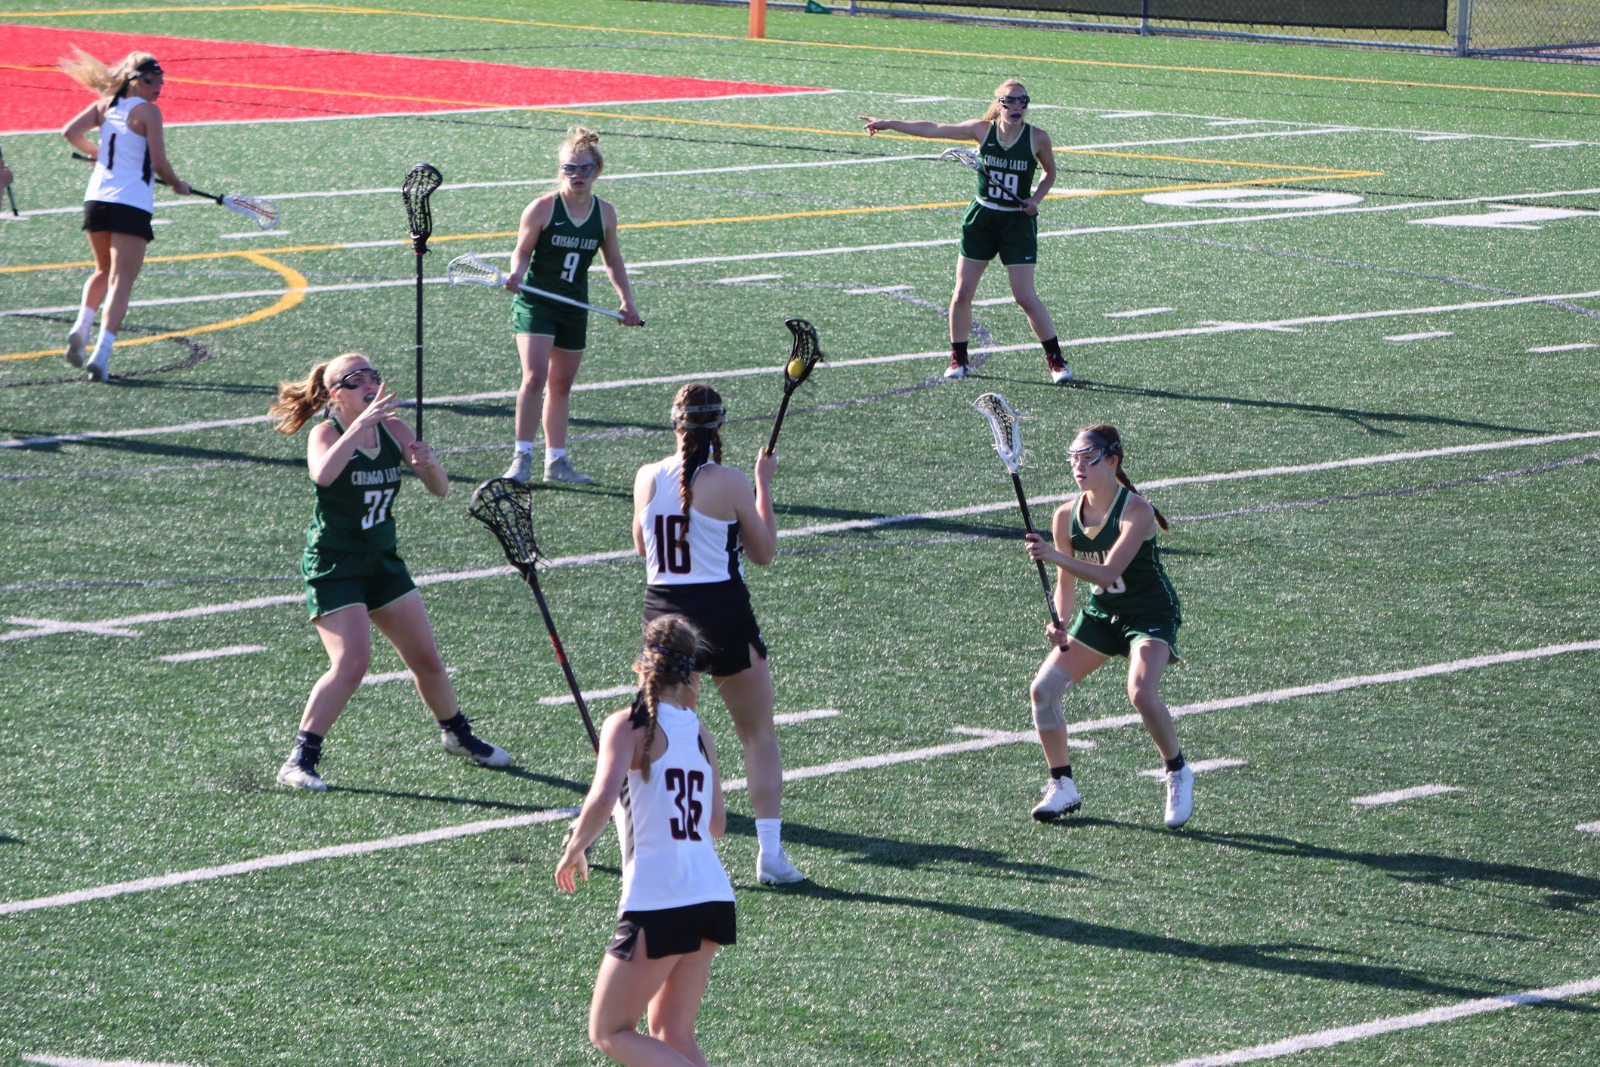 Vote Avery Haag for MN Lacrosse Hub Player of the Week!